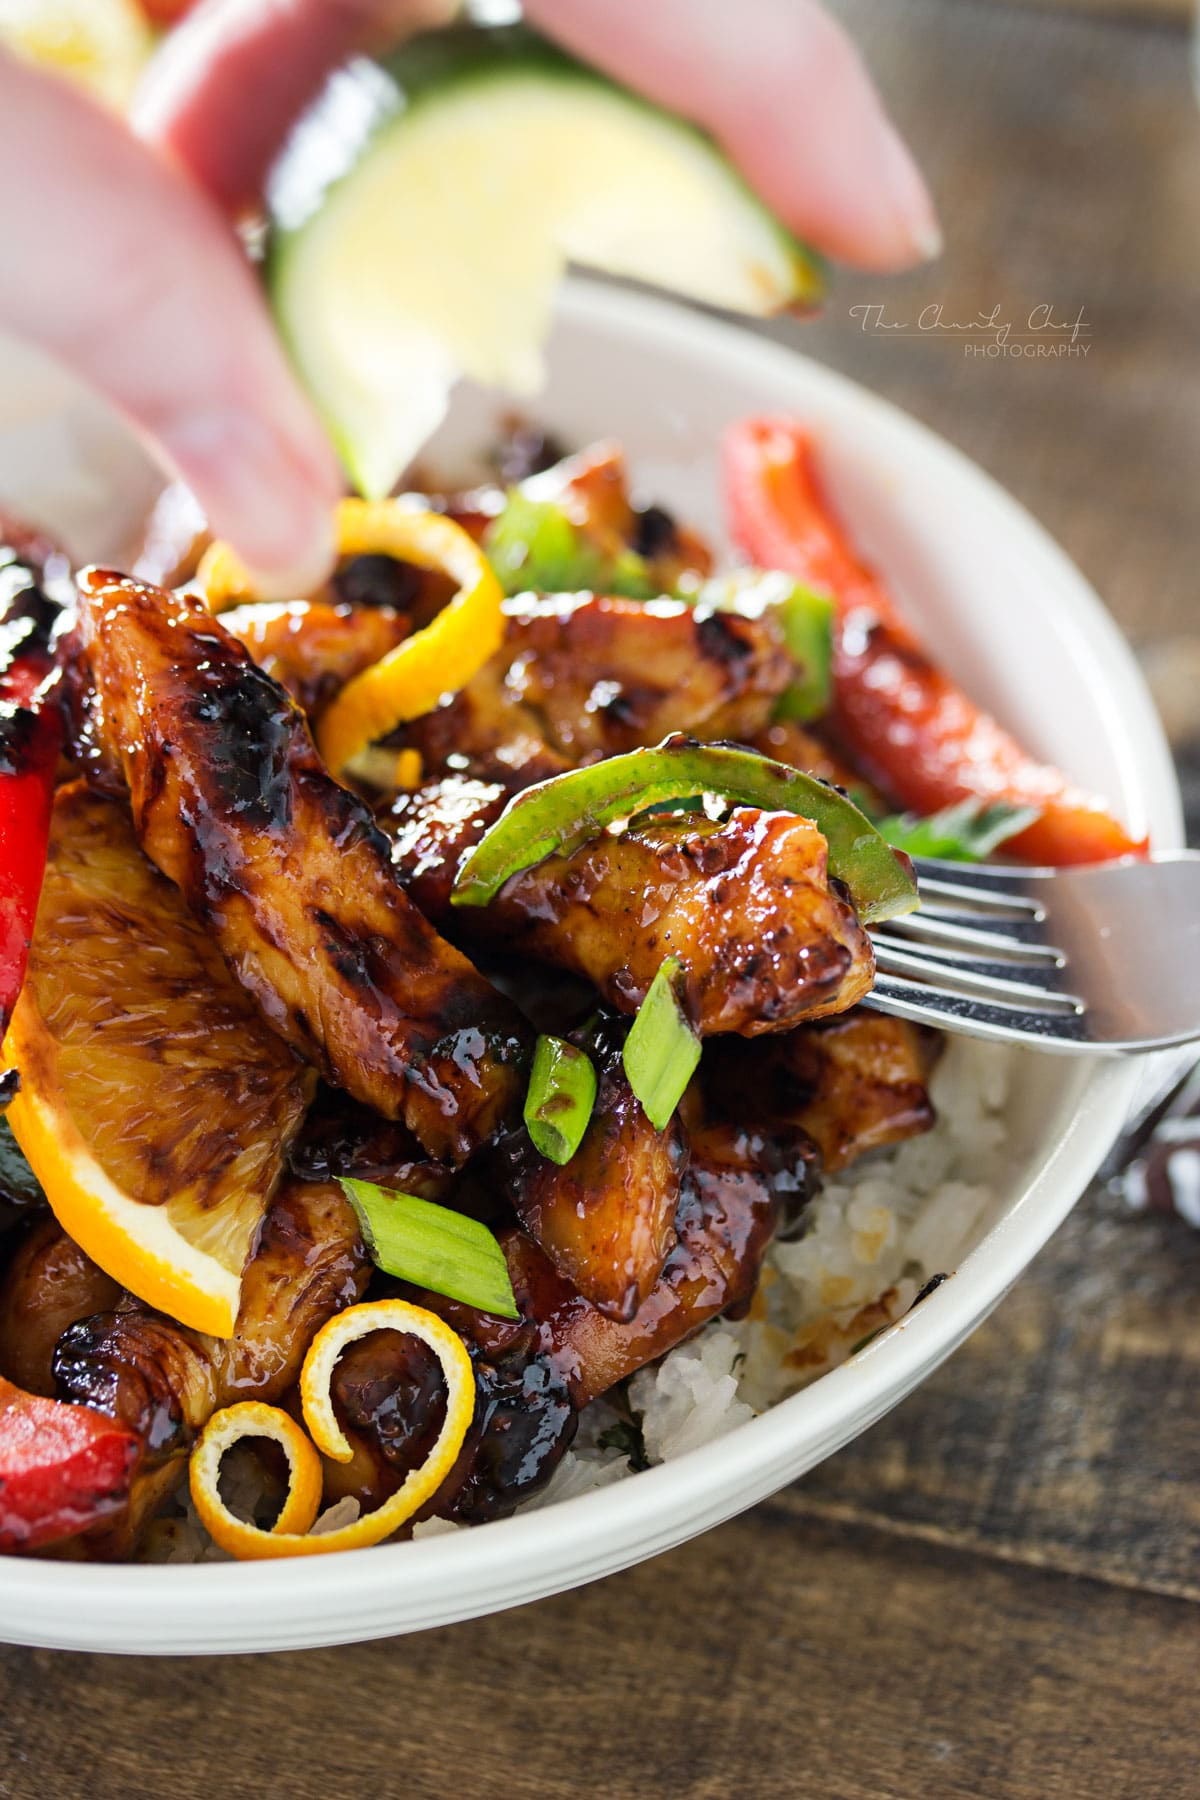 Cajun Honey Glazed Chicken Bowls | This Cajun honey glazed chicken bowl is packed with bright, fresh ingredients! The chicken is actually cooked IN the marinade, allowing for maximum flavor. | http://thechunkychef.com